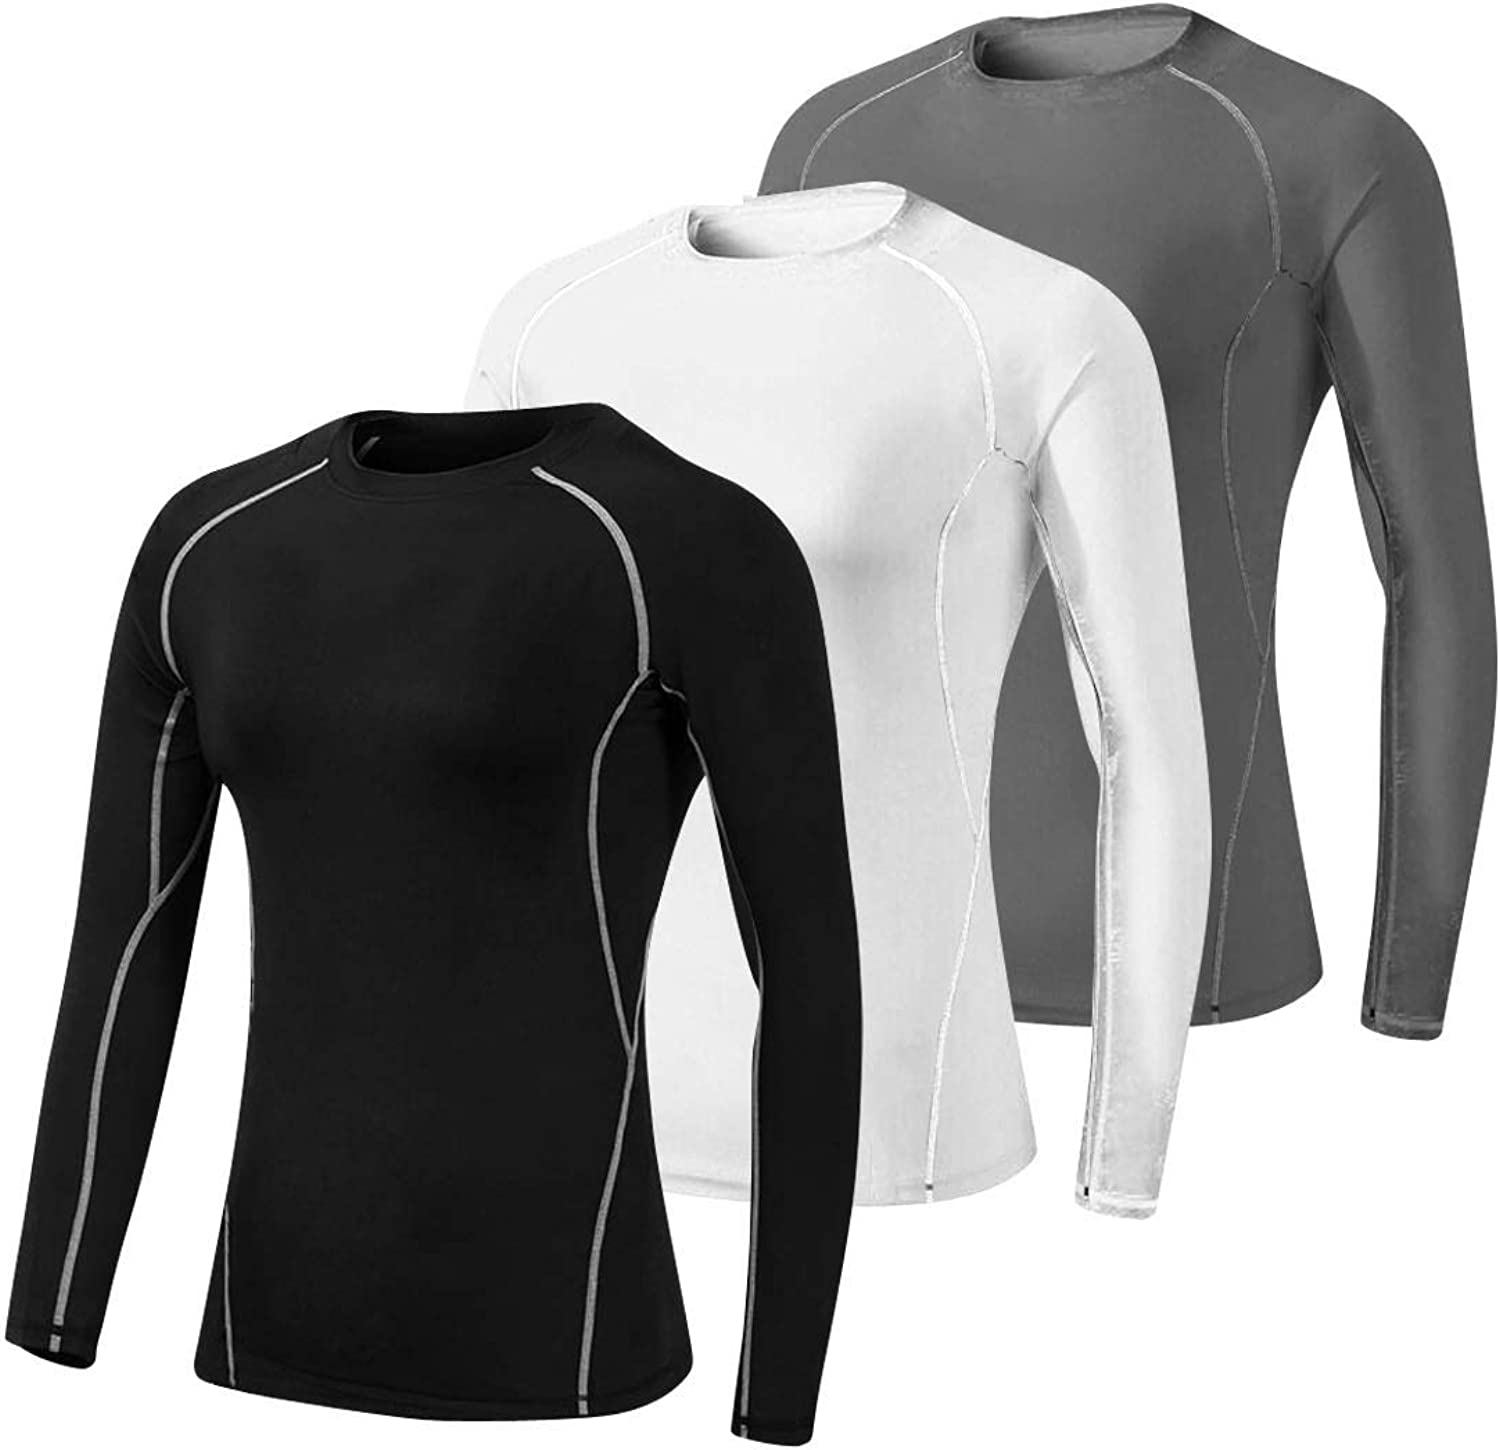 LNJLVI Women's 3 Pack Athletic Compression Long Sleeve T Shirt Tops